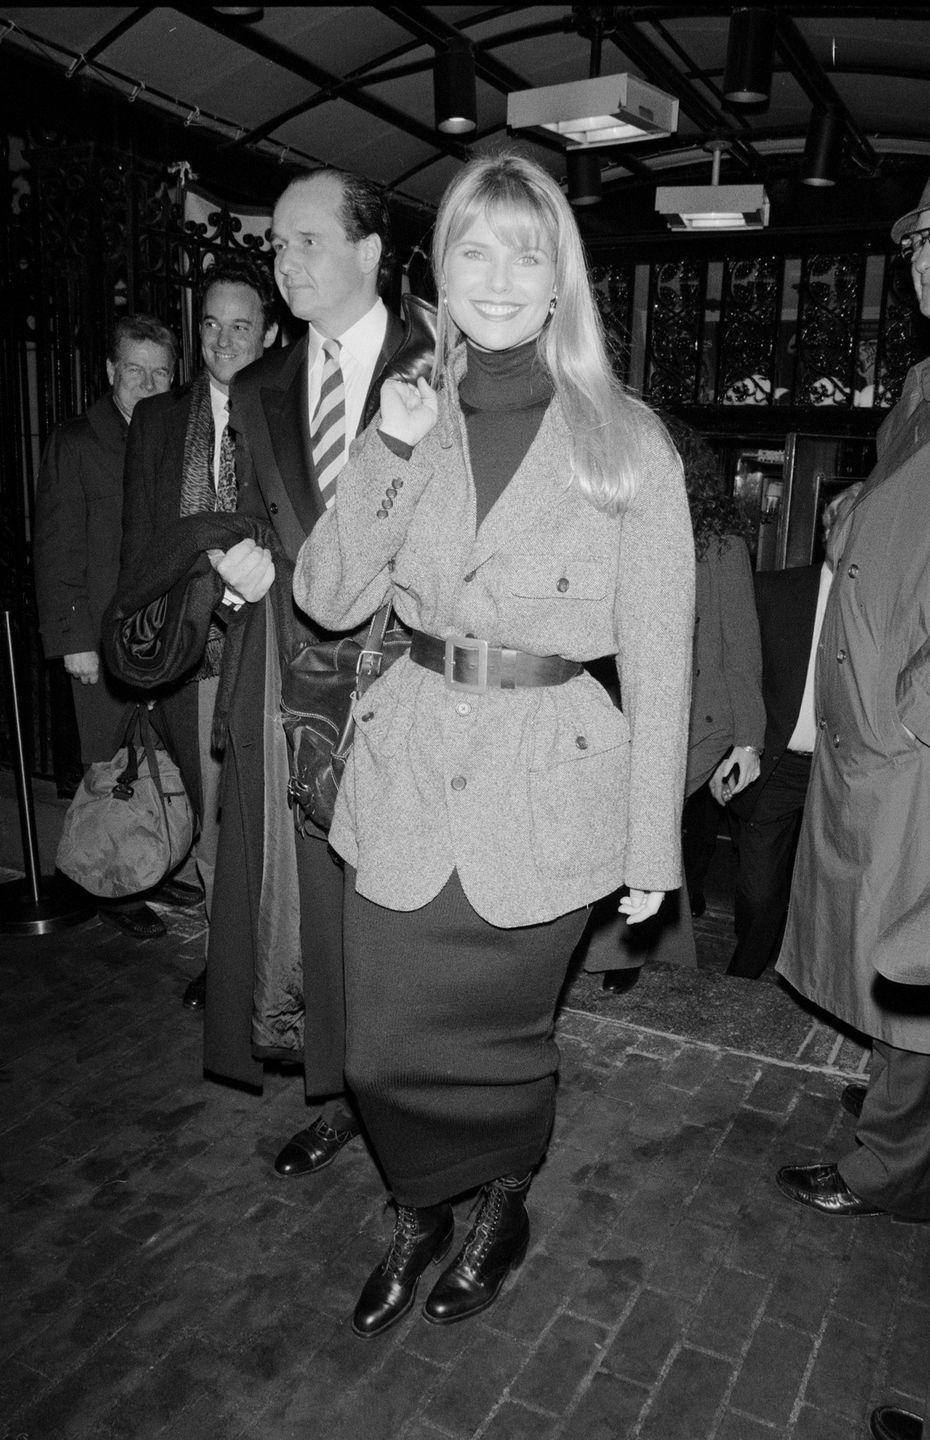 <p>With the '90s came the rise of grunge culture, and combat boots were a common sight on the red carpet—as seen here on model Christie Brinkley, who wore a pair to the grand opening of the Sony Plaza in New York City.</p>